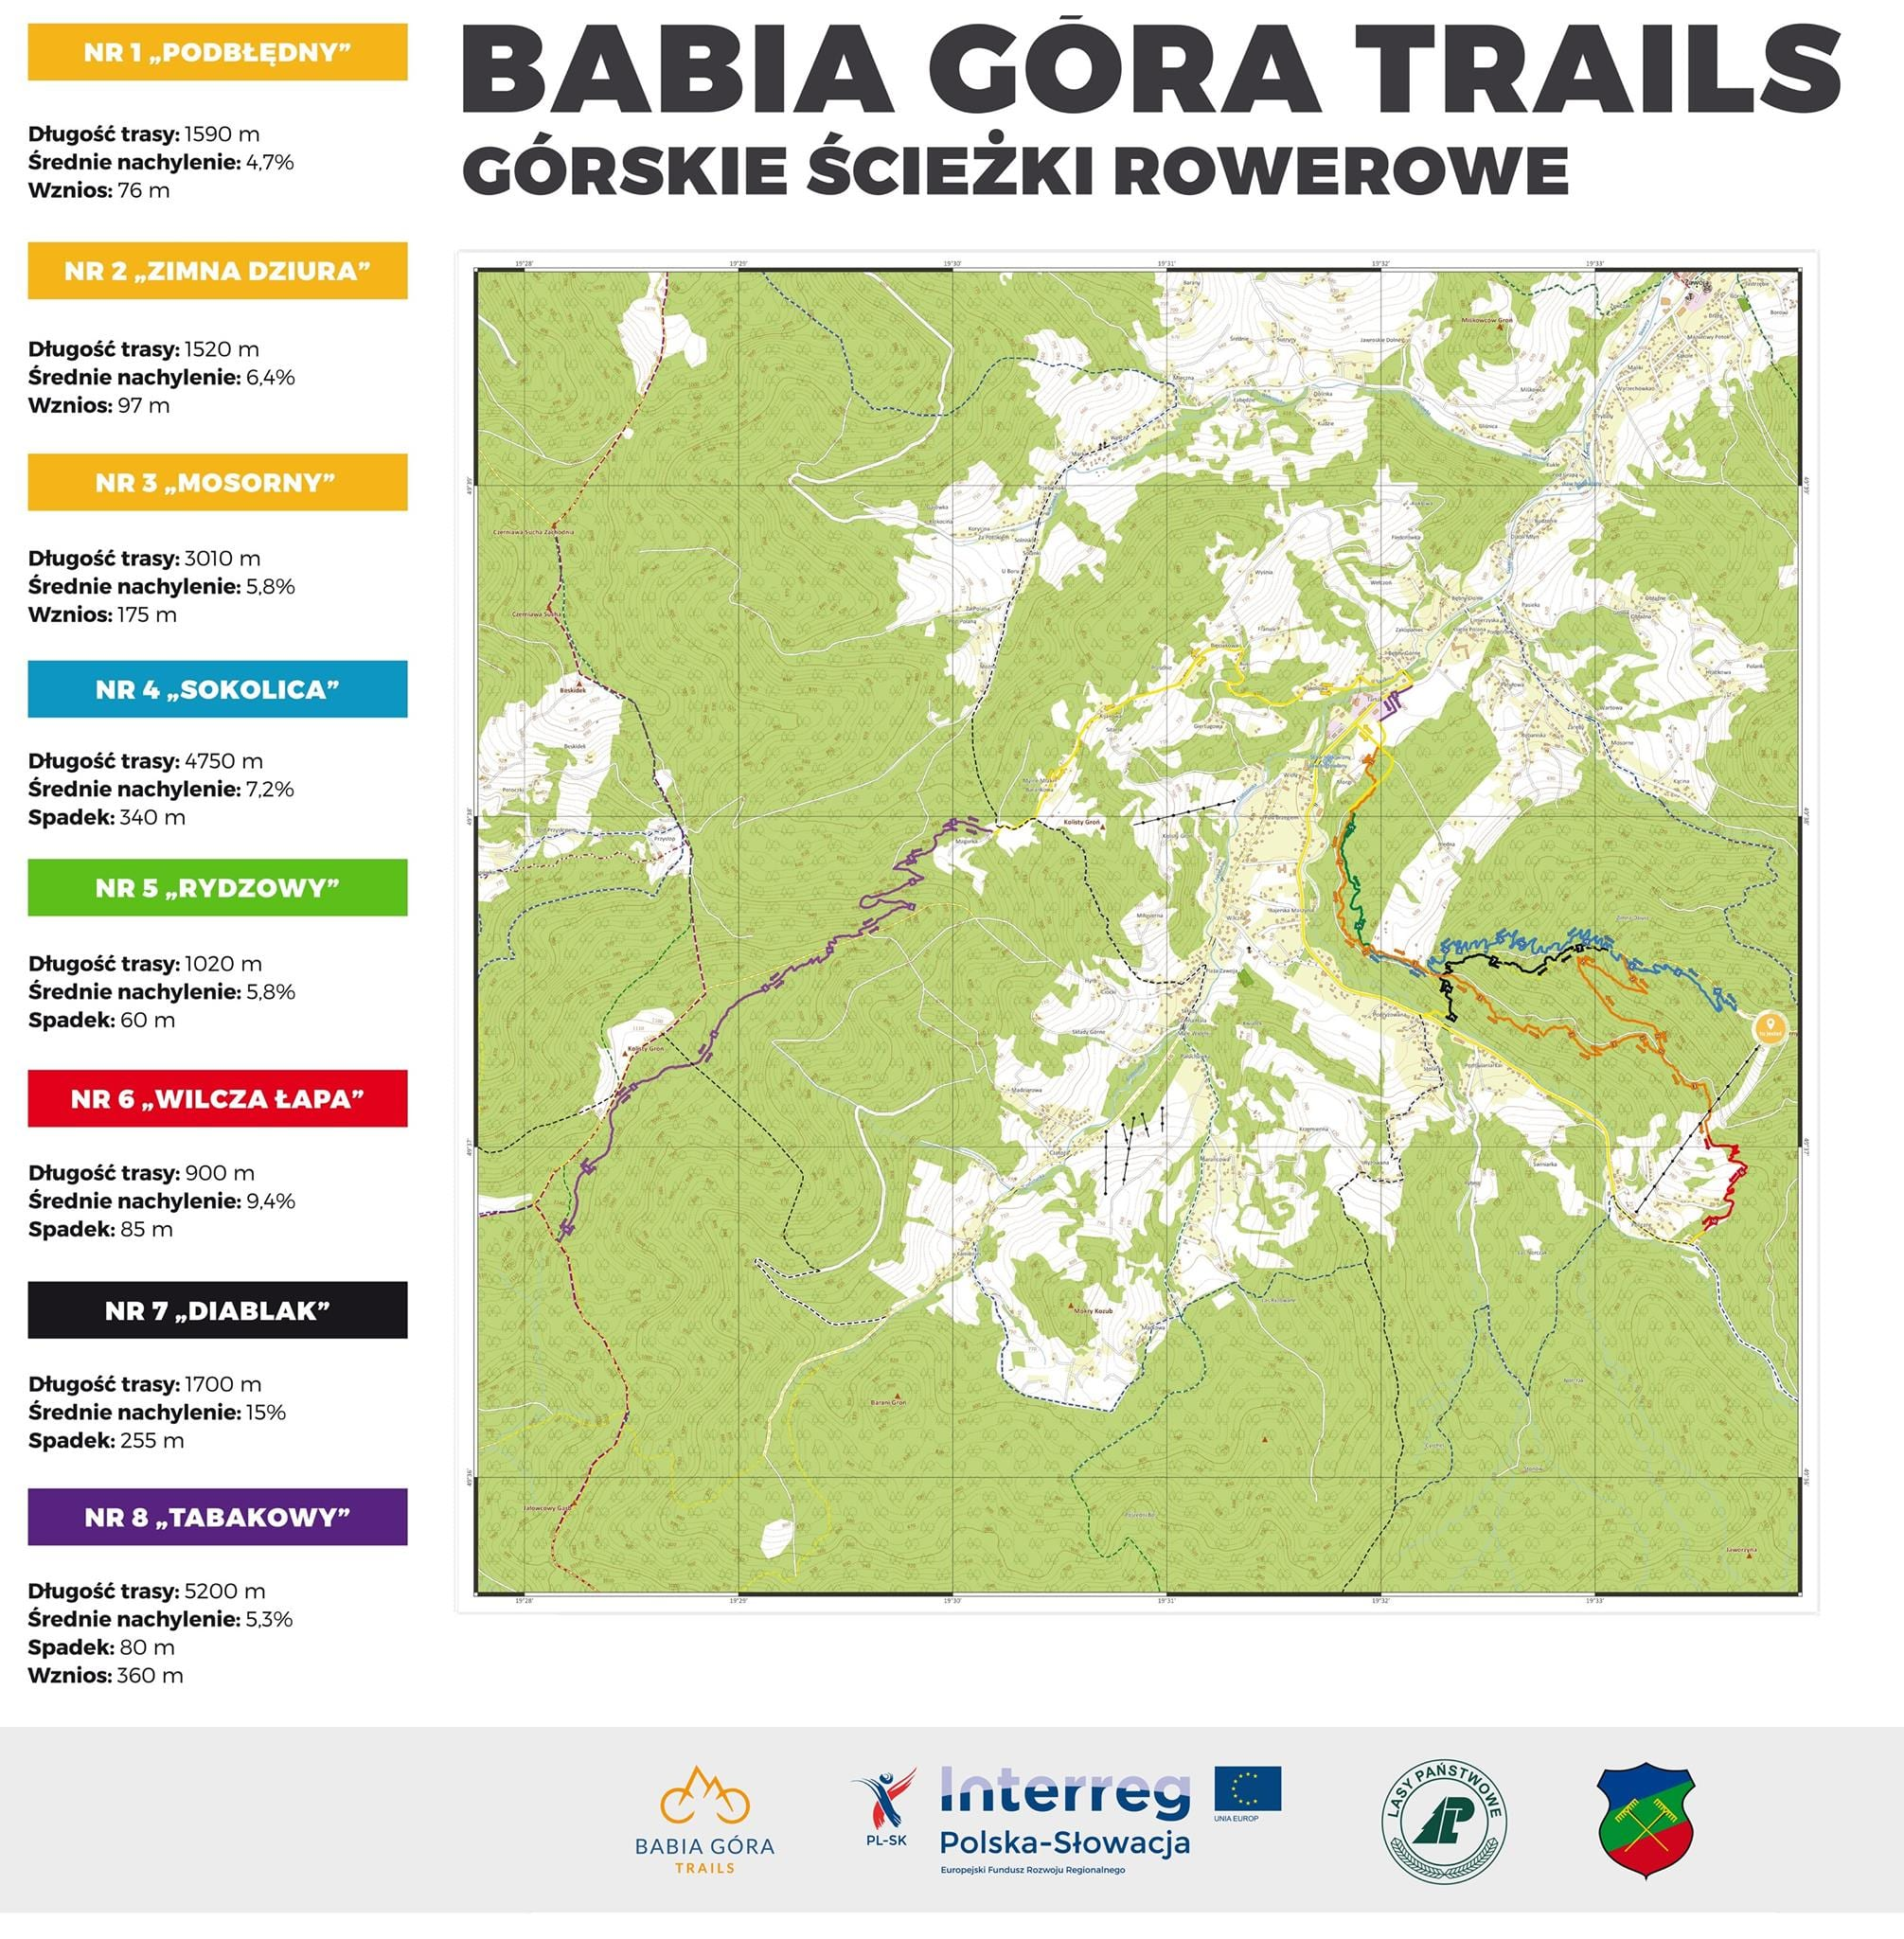 babia_gora_trails